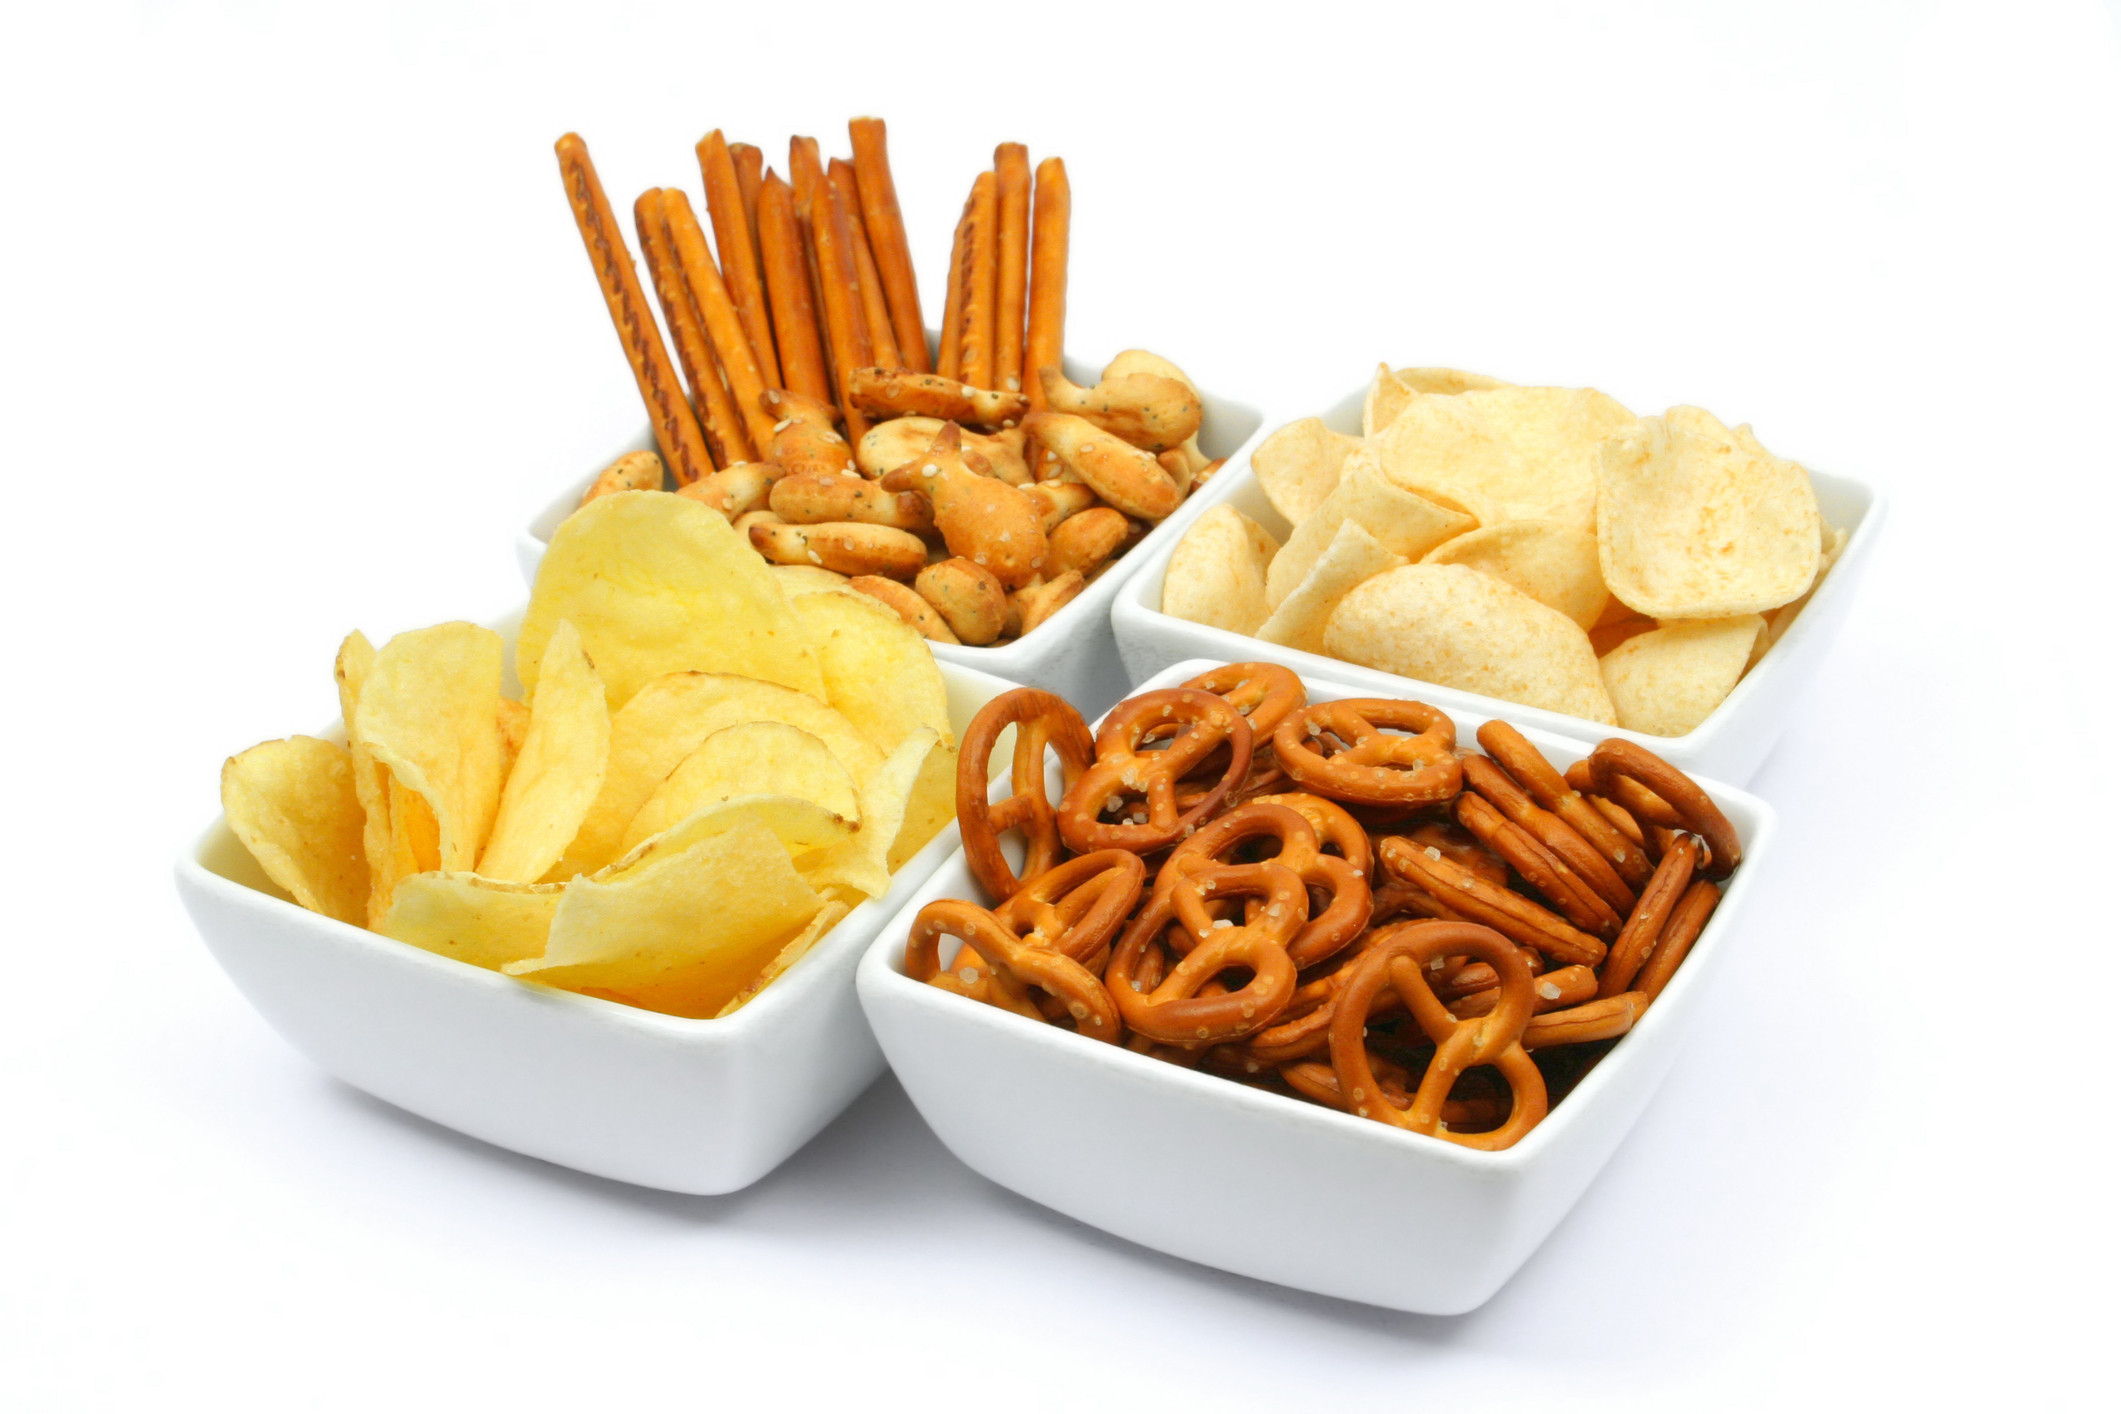 Buy Healthy Snacks  Top 10 Healthy Snacks To Buy For An Active Life